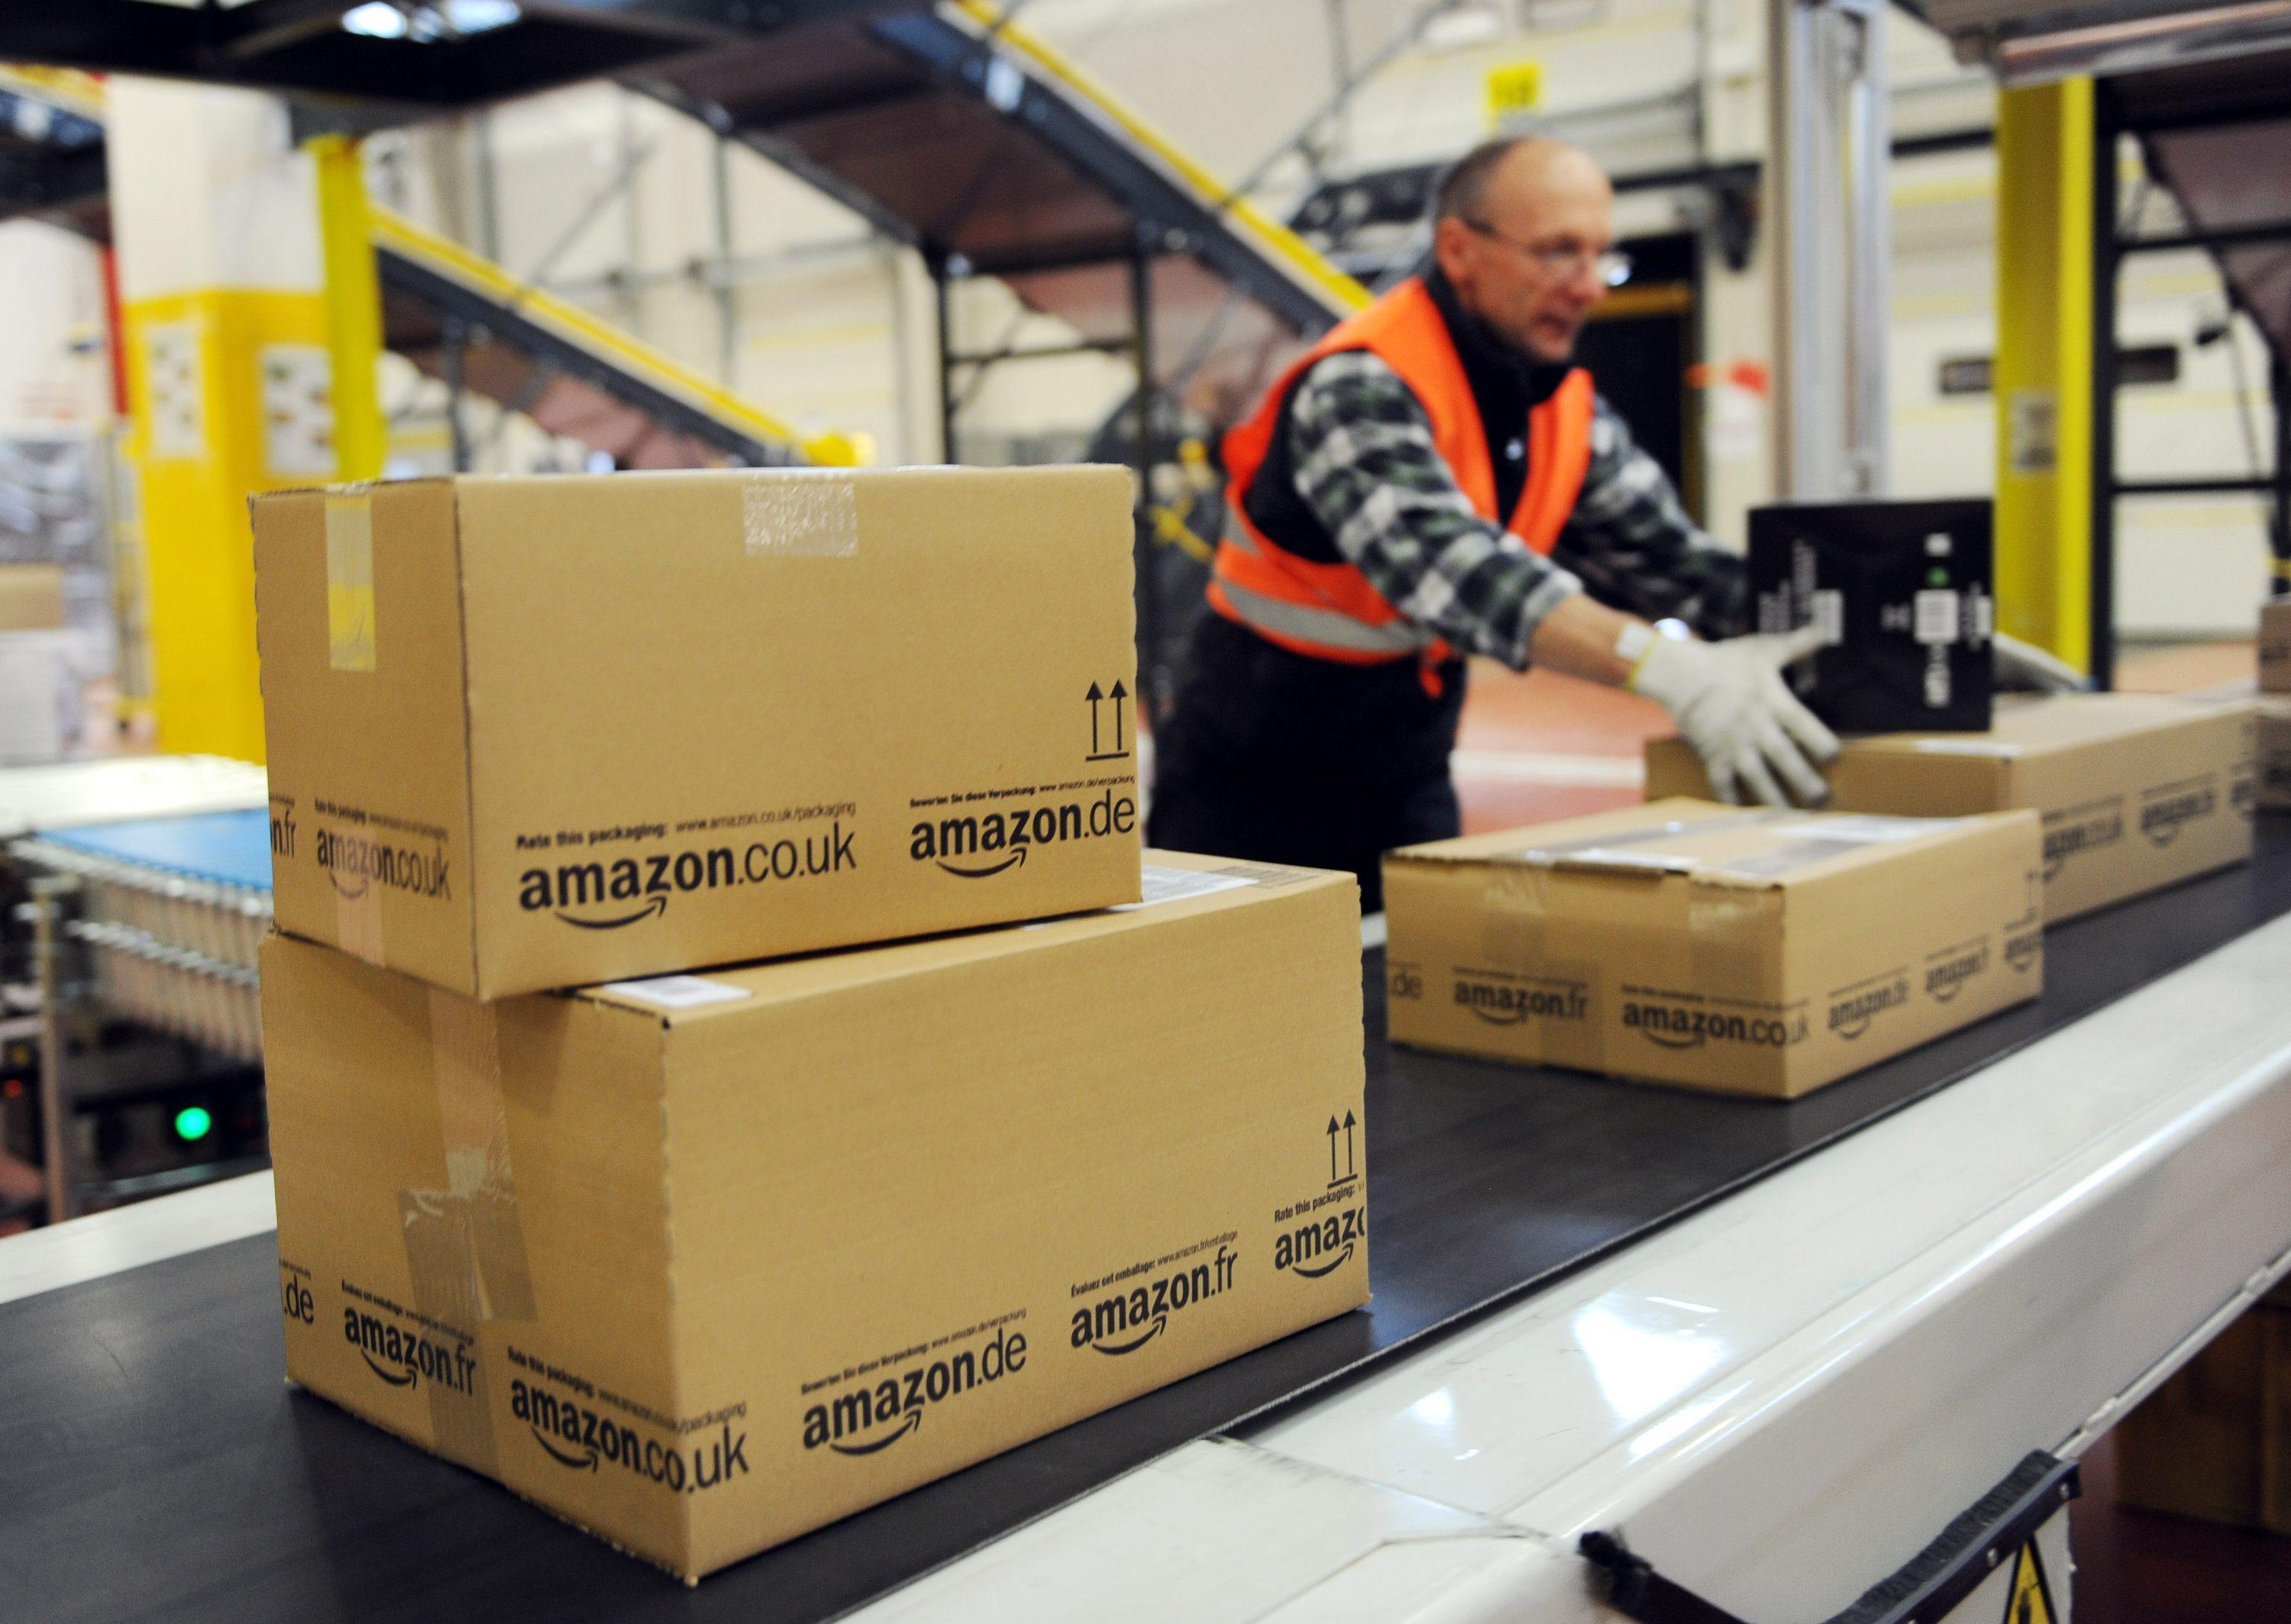 Amazon suggerisce ingredienti per bombe